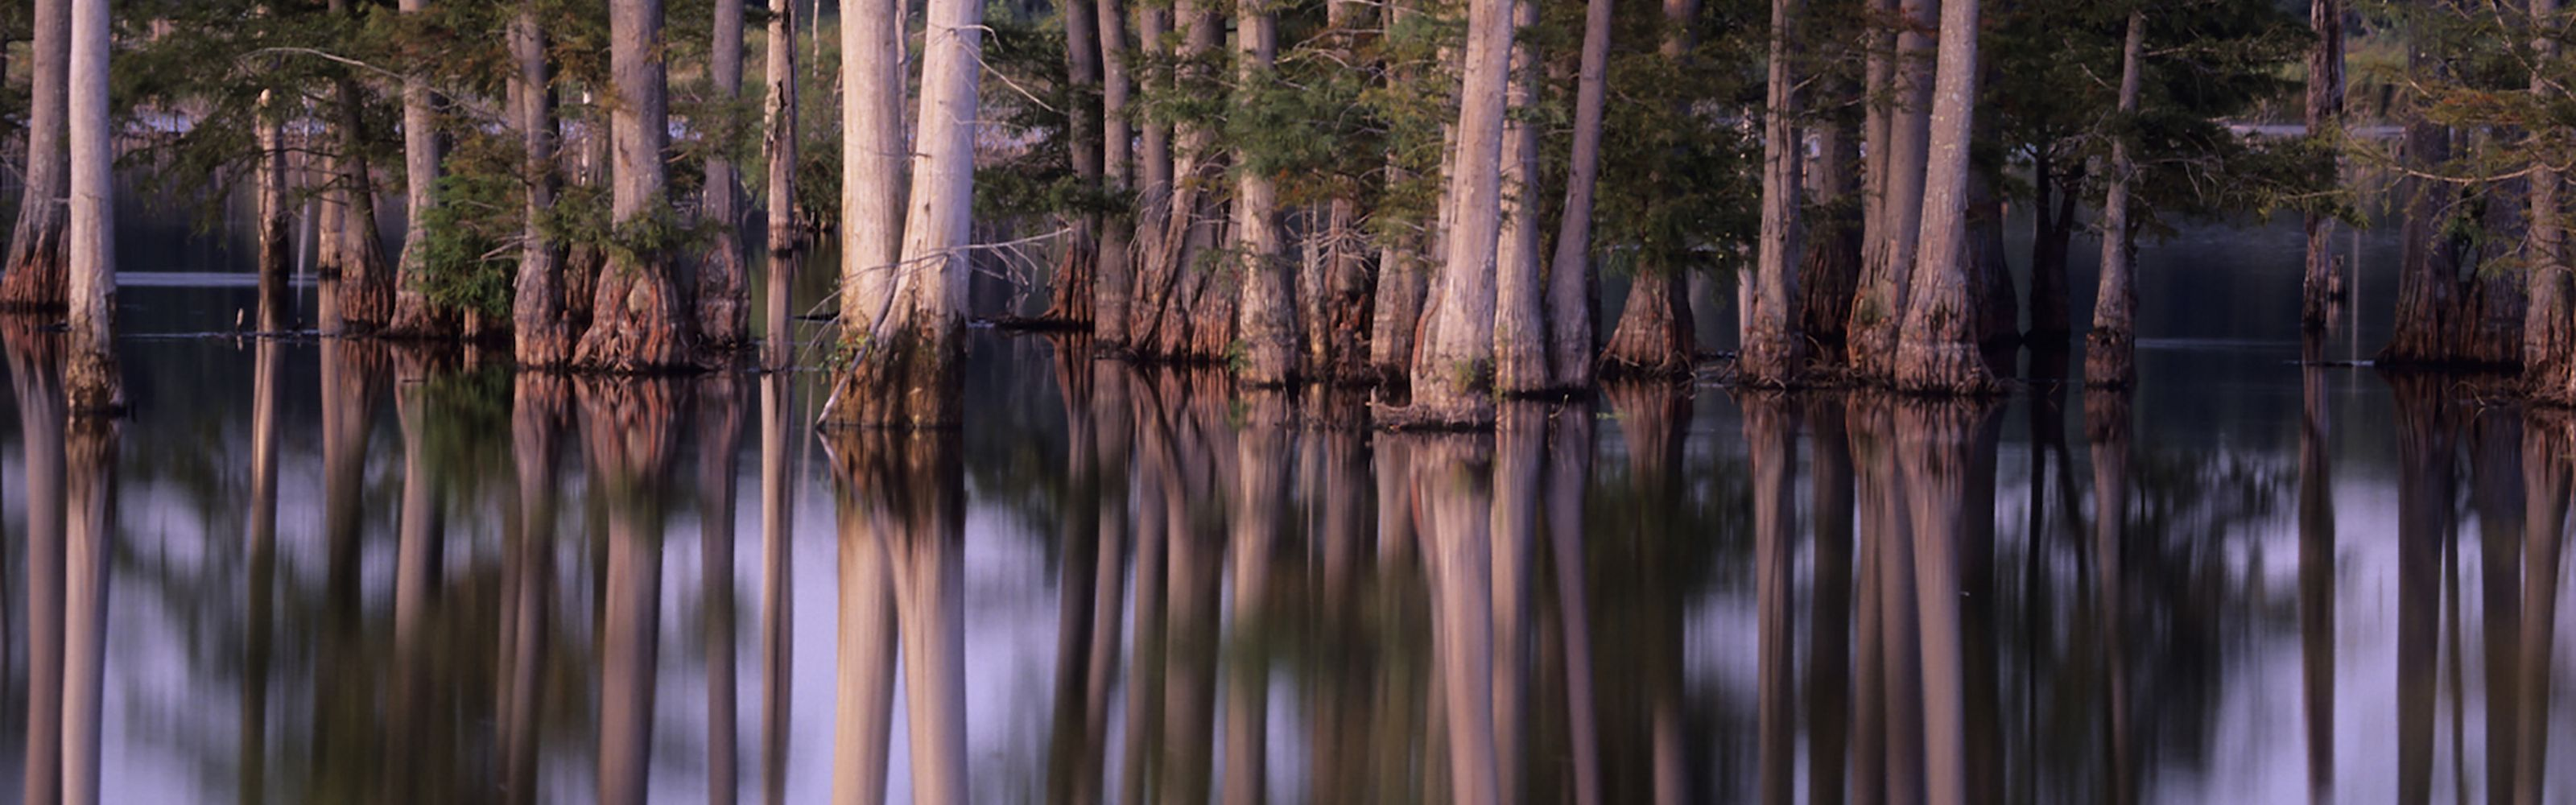 A stand of trees surrounded by water.